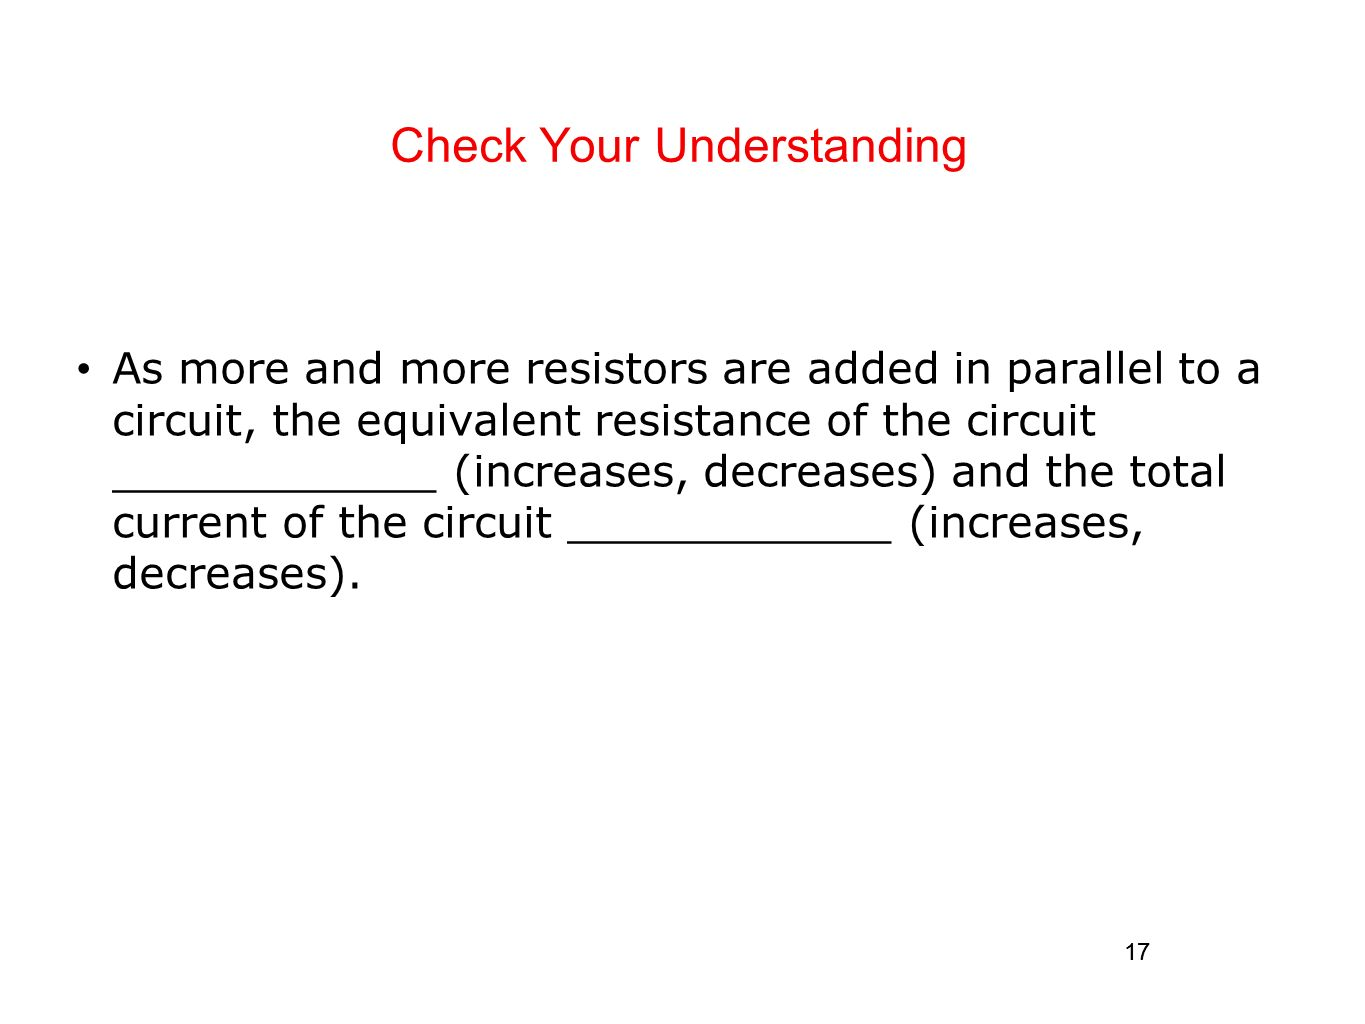 Series And Parallel Circuits Ppt Download Resistors What Is The Equivalent Resistance Of Circuit Below Check Your Understanding